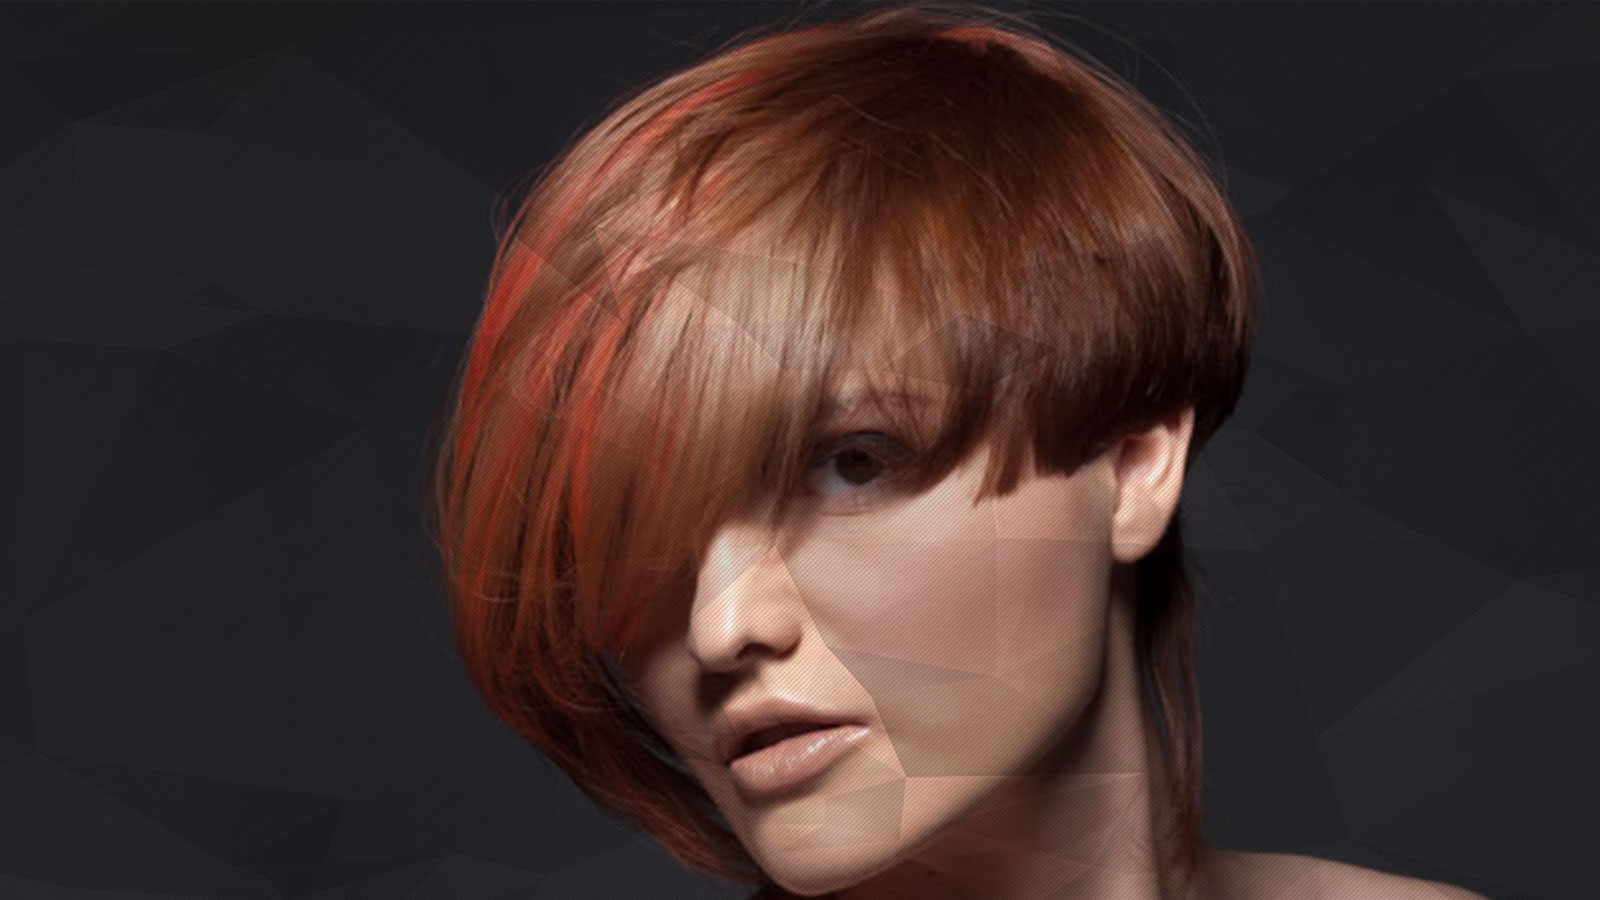 Why QuasiPermanent Hair Colour Should Be Your First Consideration - Hair colour picture